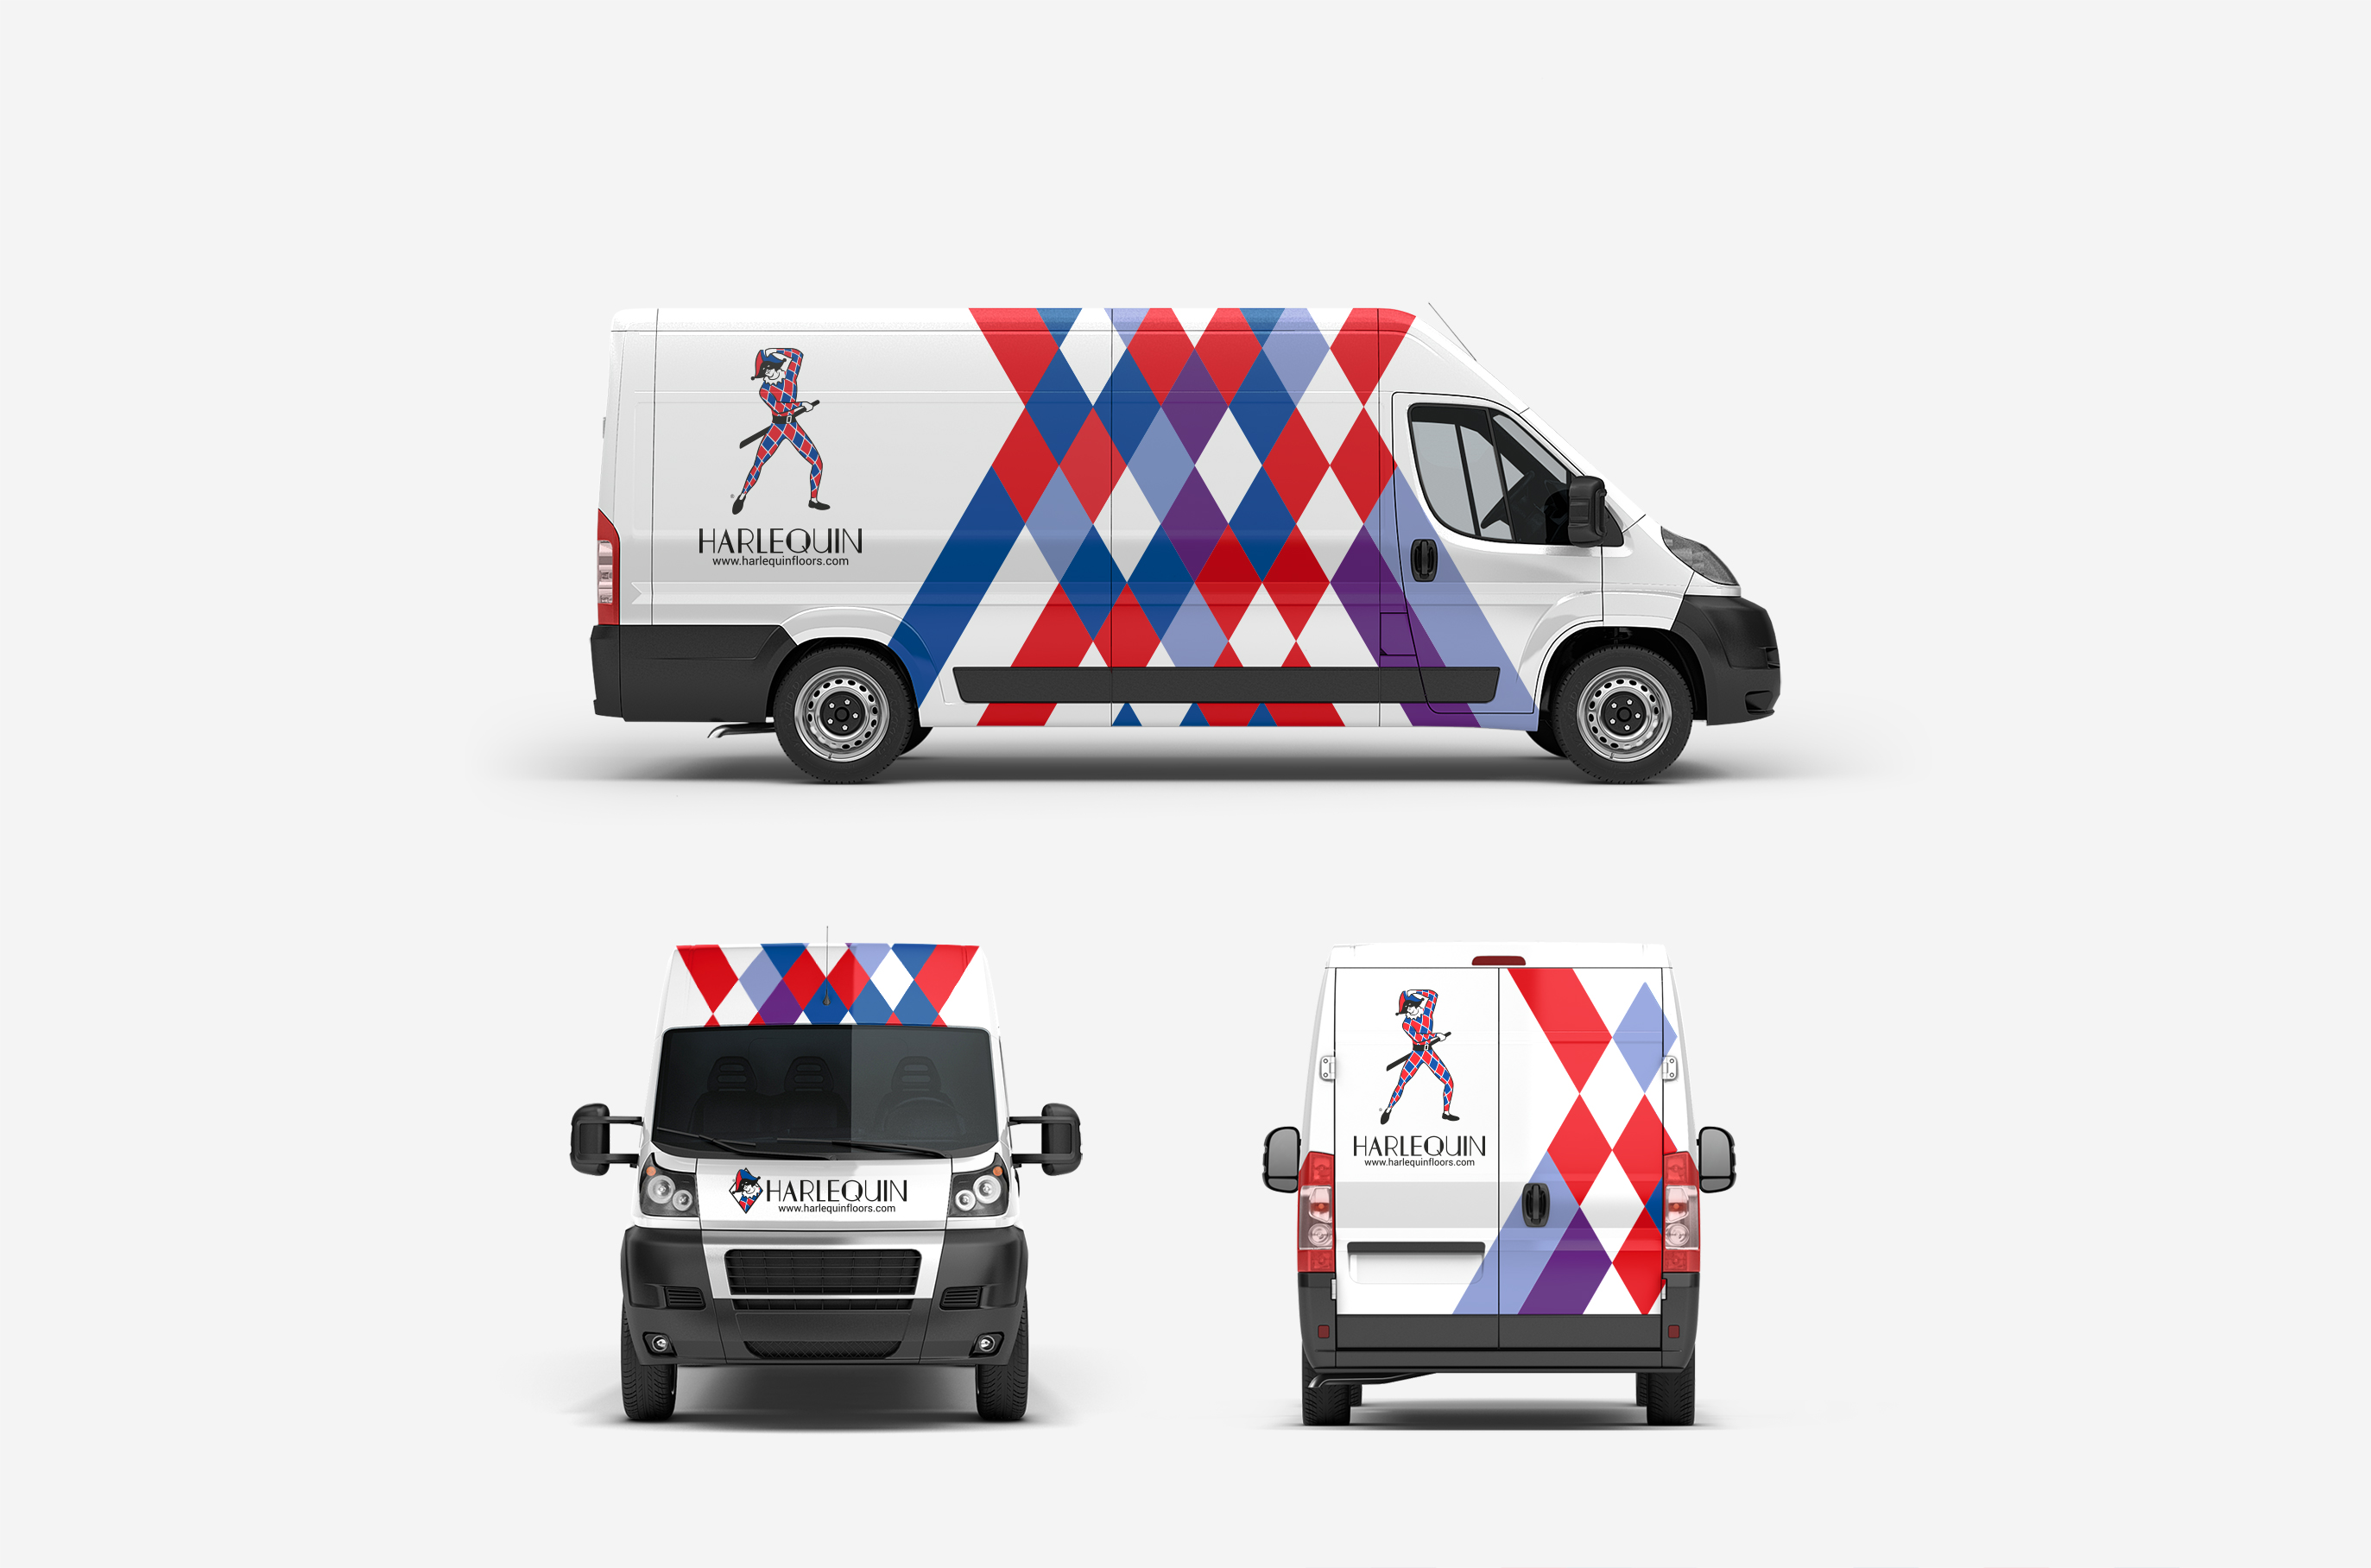 Harlequin Floors van livery